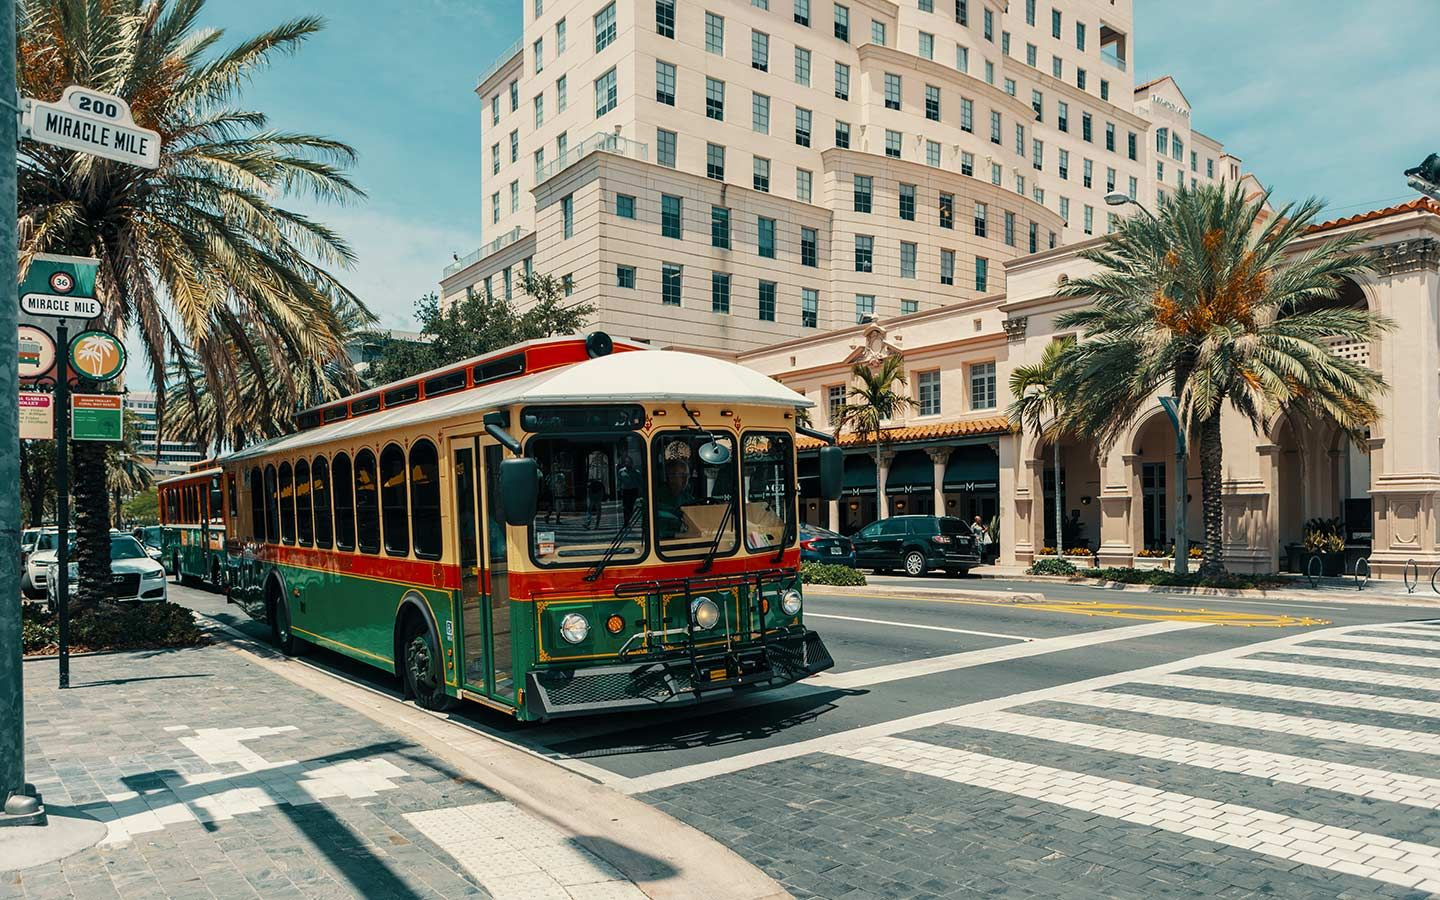 How To Get To Coral Gables